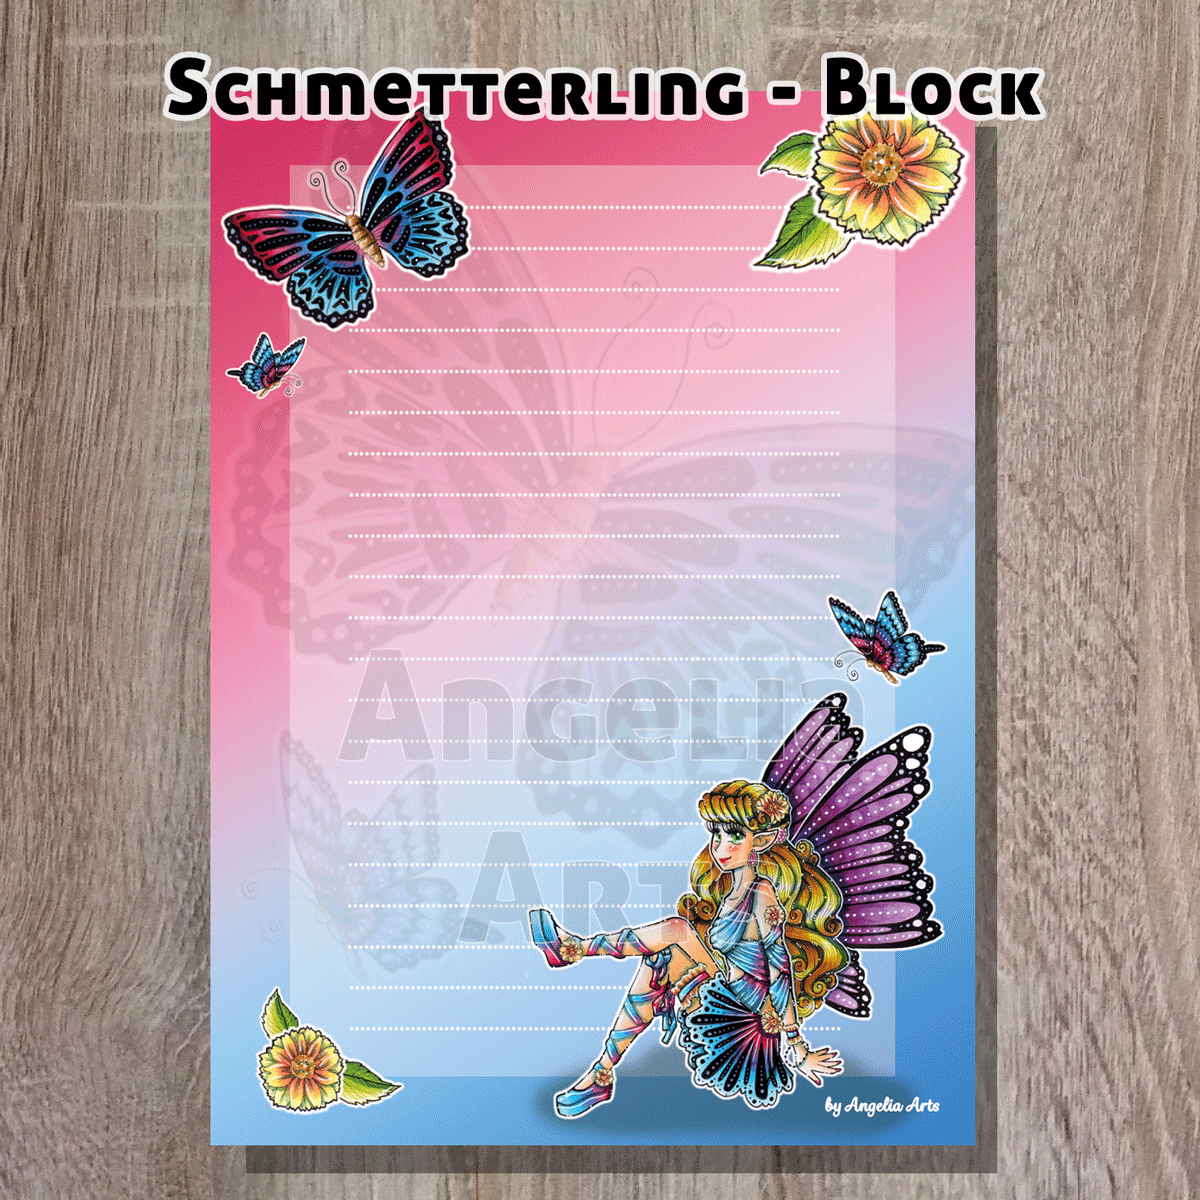 Schmetterling-Block